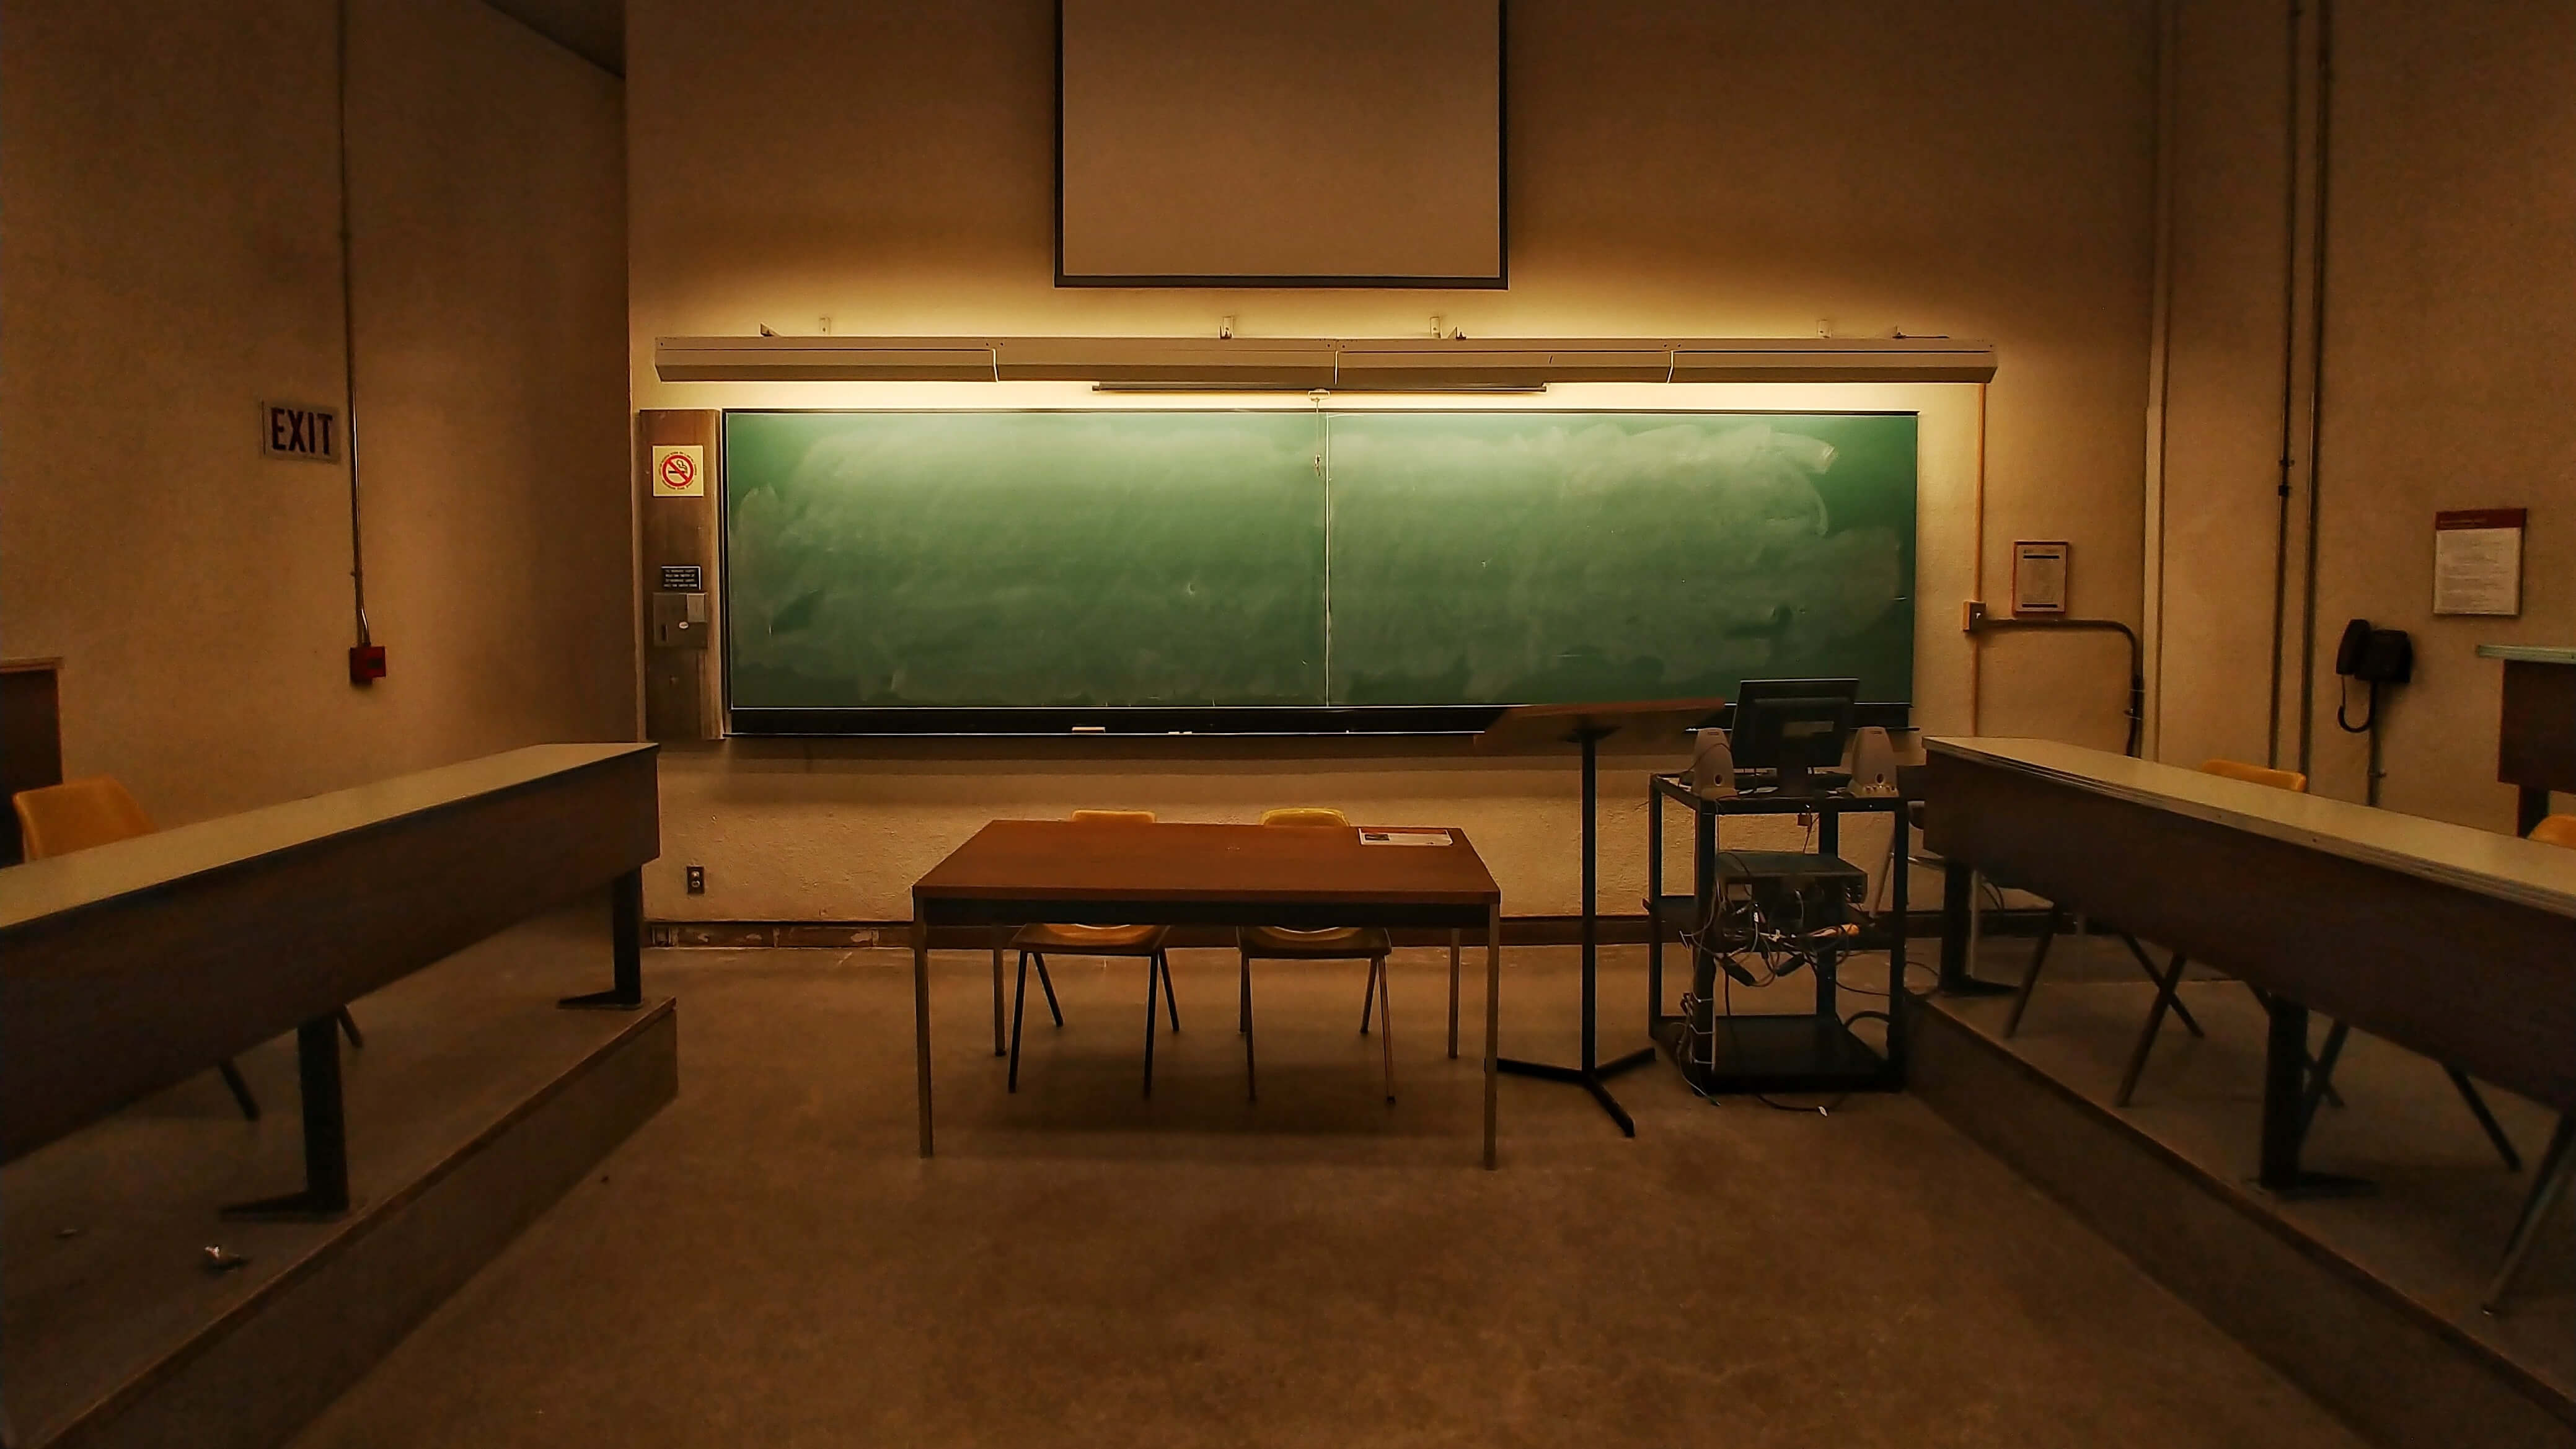 An empty classroom with a blackboard